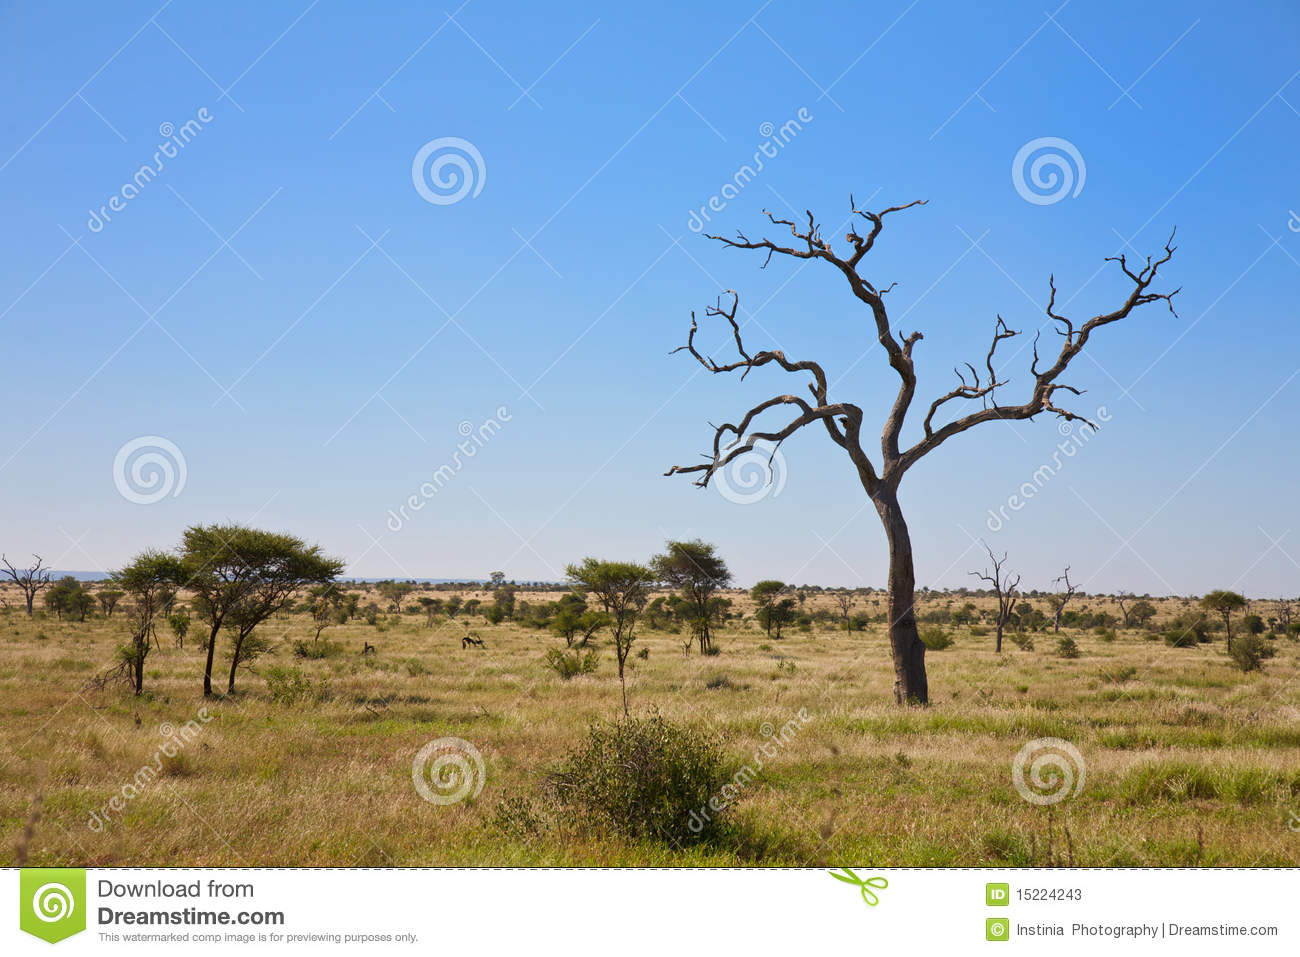 Savanna Bush Veld With Trees, South Africa Stock Photos.